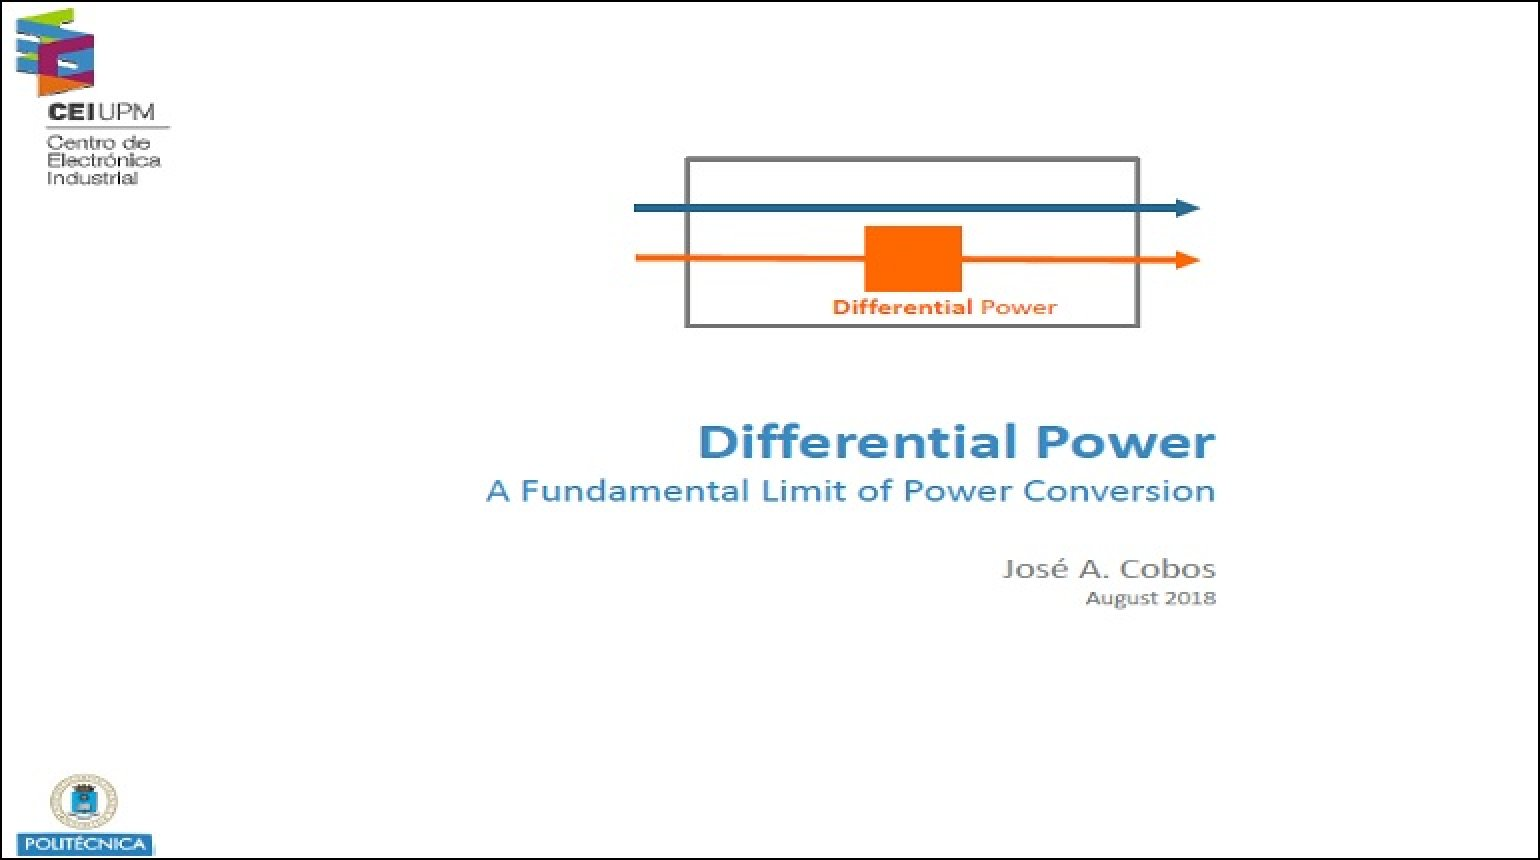 Differential Power: A Fundamental Limit of Power Conversion Video